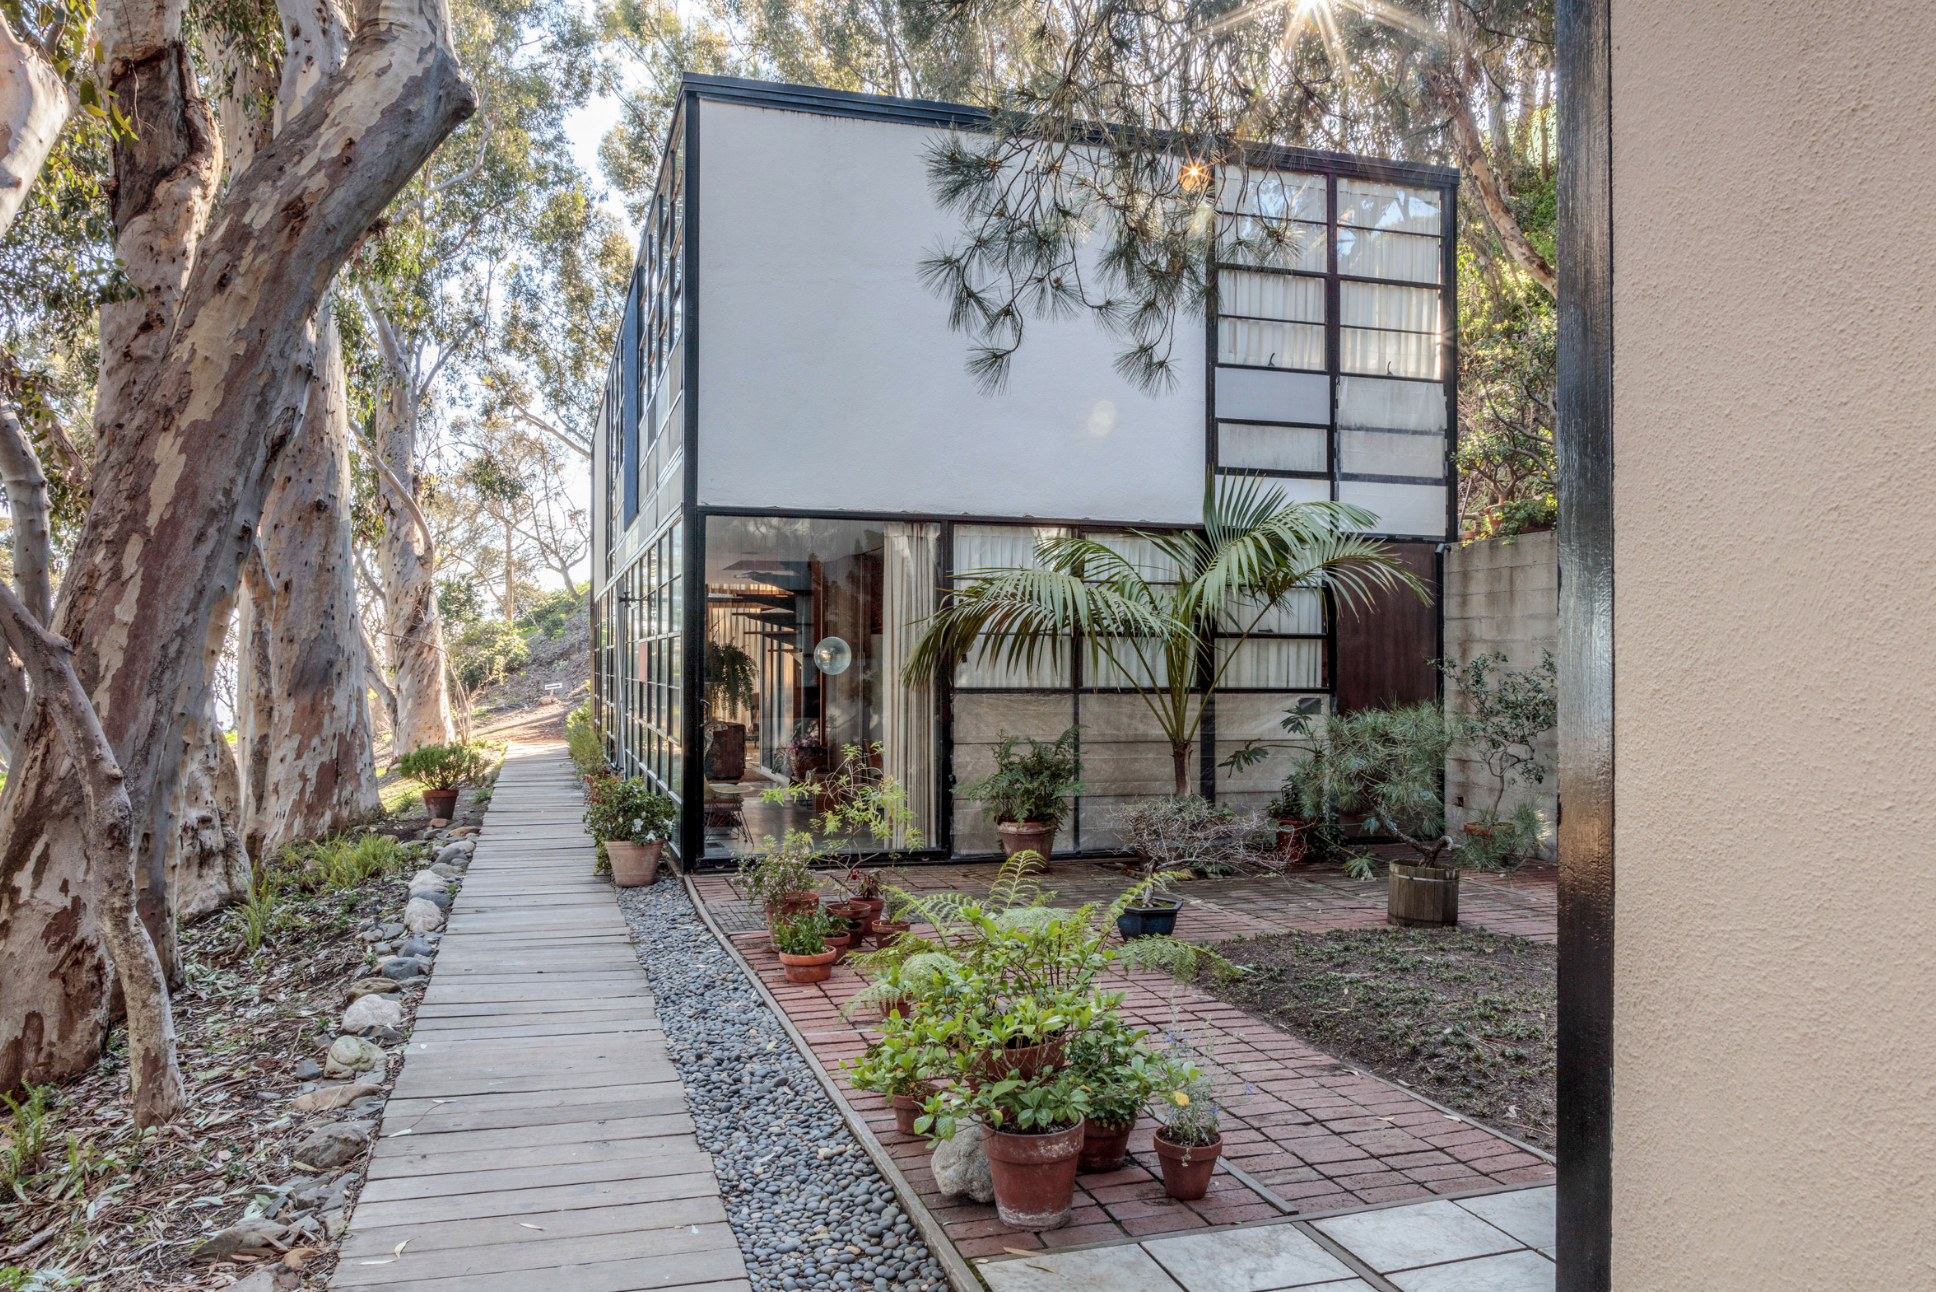 The Eames House | Photo Credit: Leslie Schwartz and Joshua White